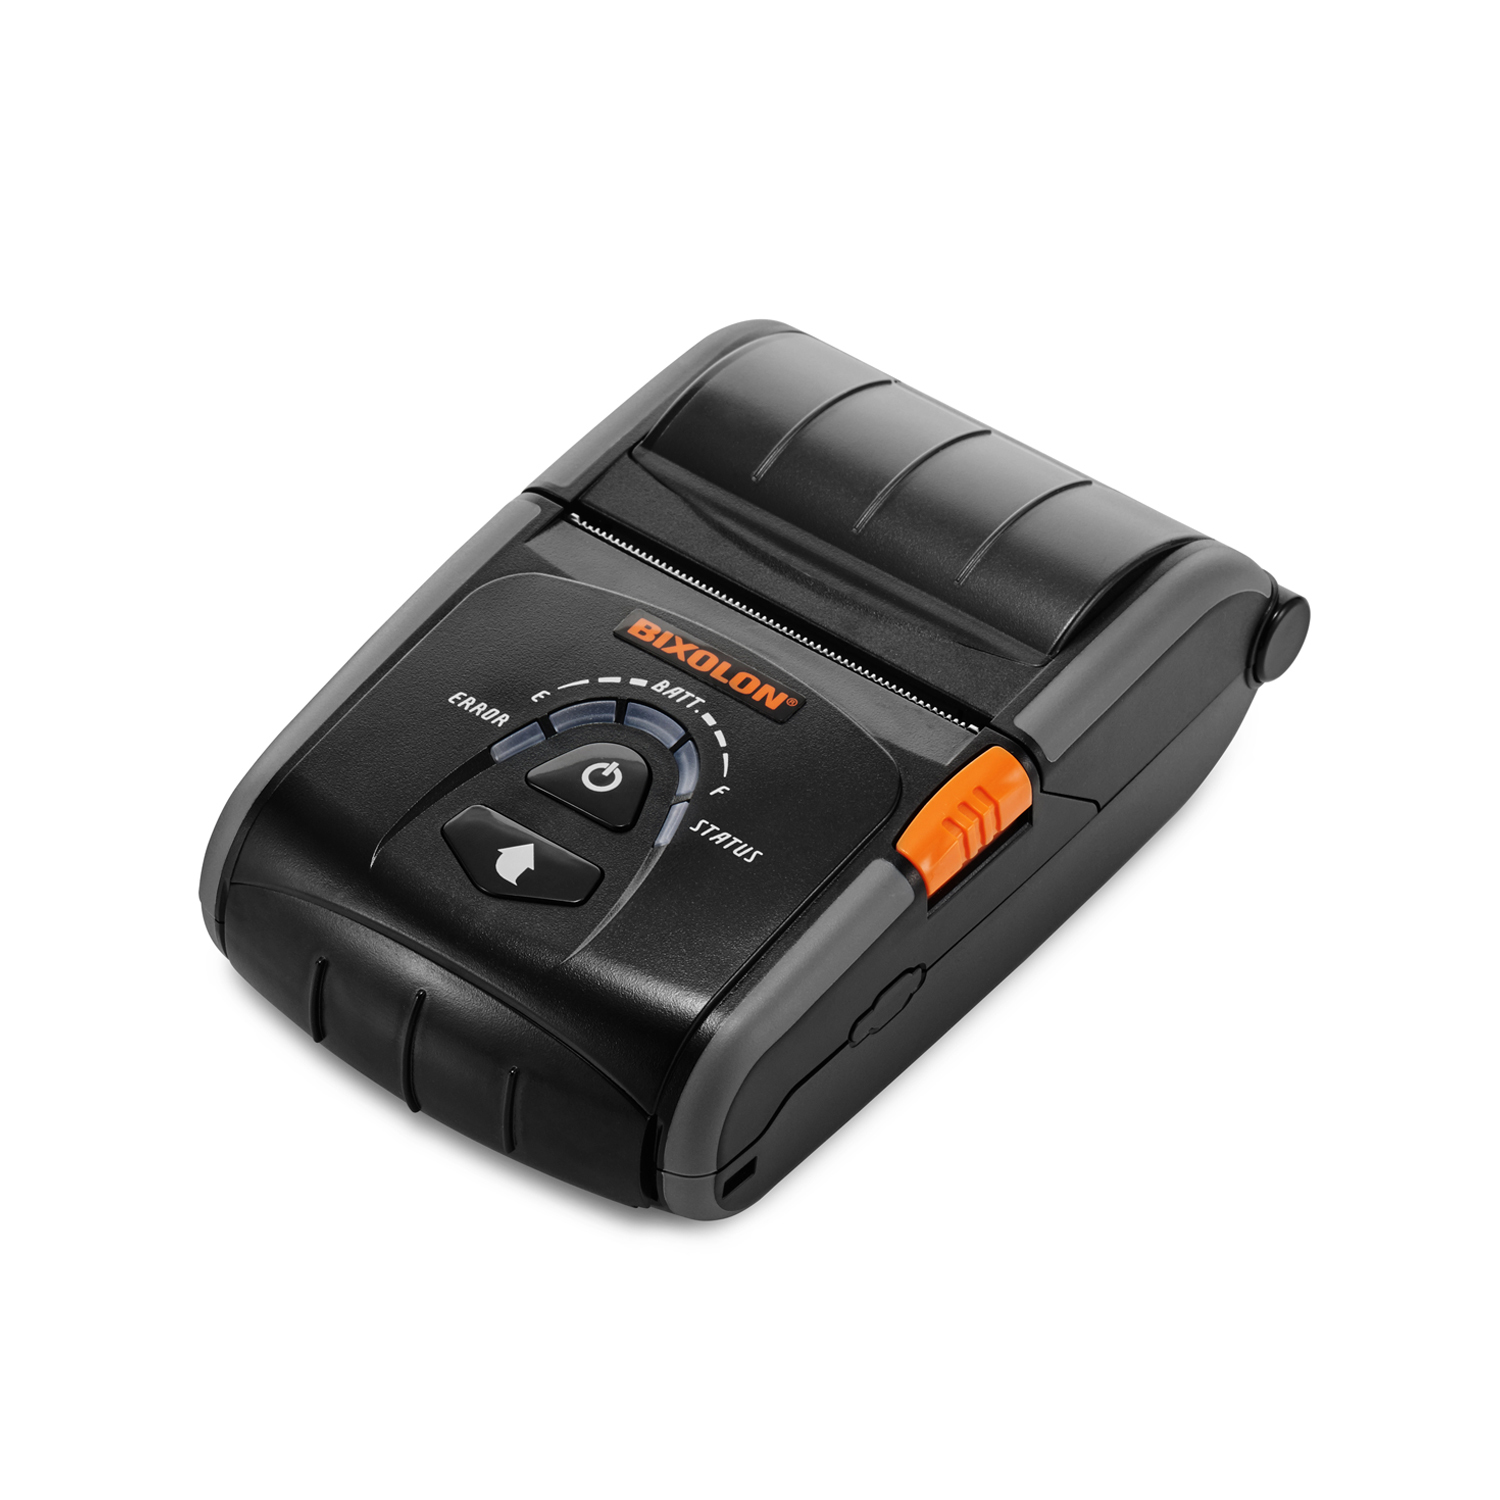 Bixolon SPP-R200III Direct thermal Mobile printer 203 x 203DPI